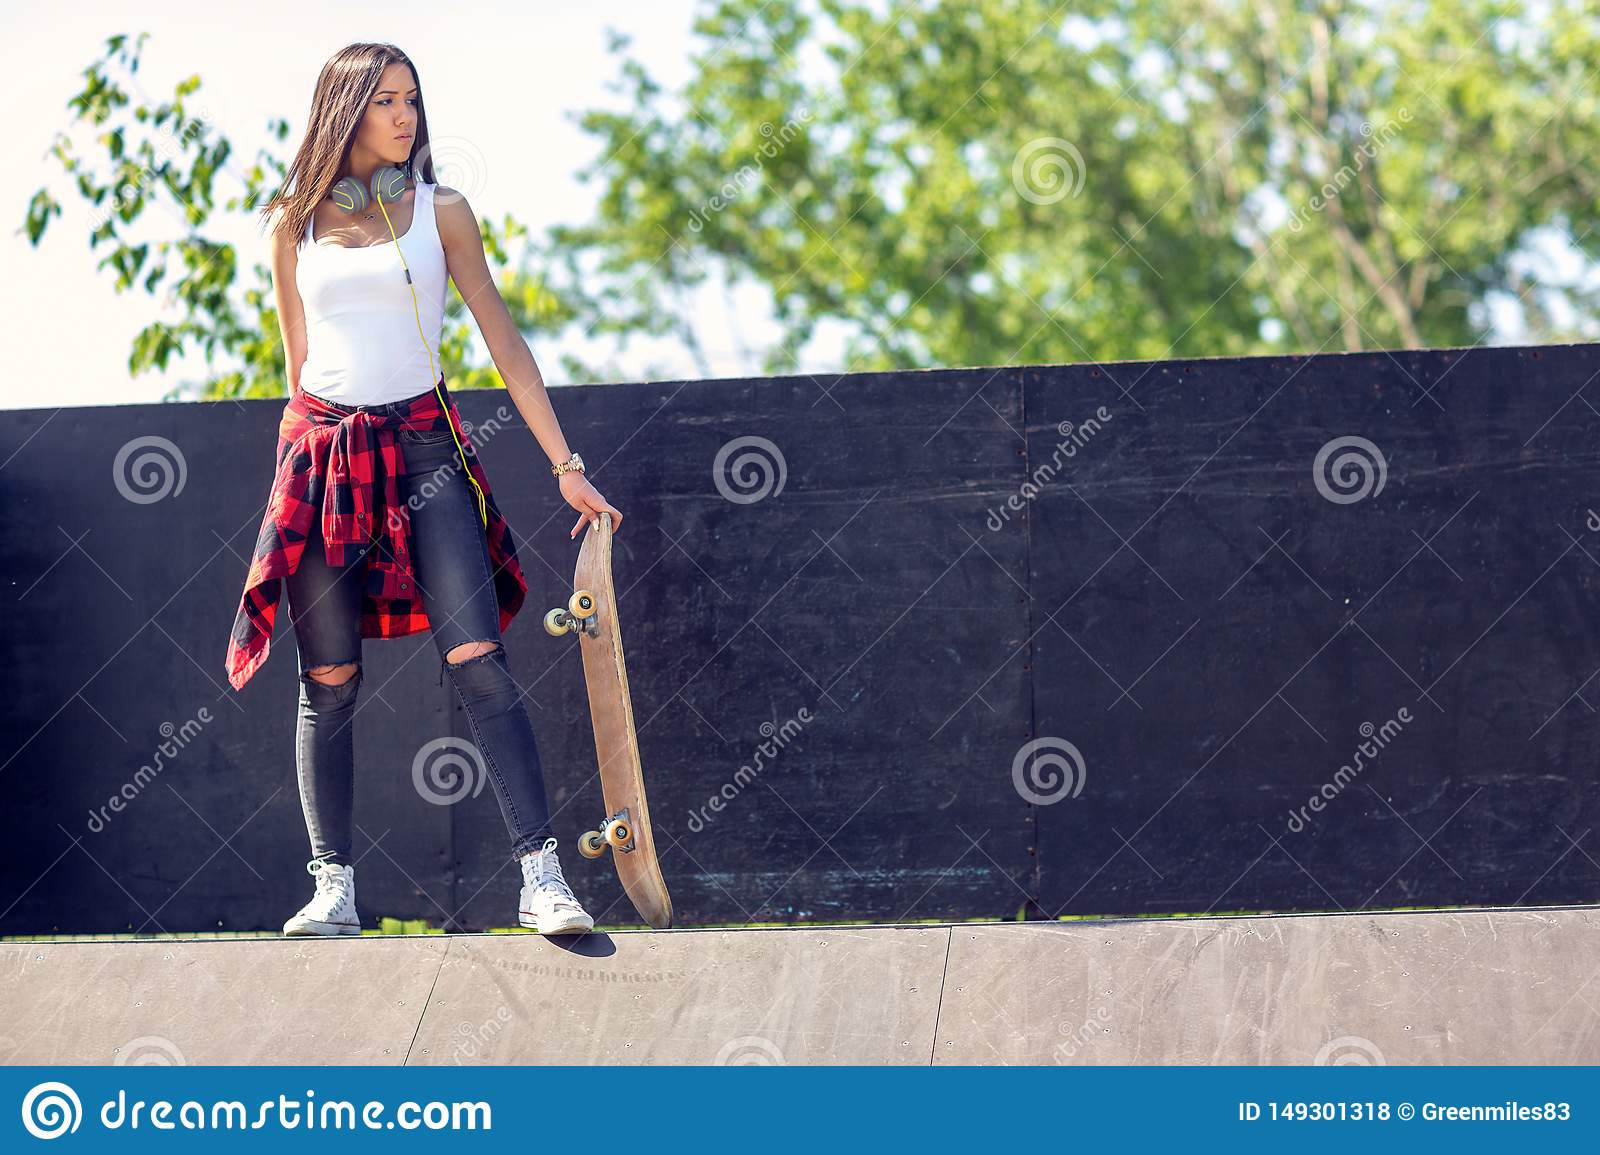 Sporty teen girl with skateboard. Outdoors, urban lifestyle